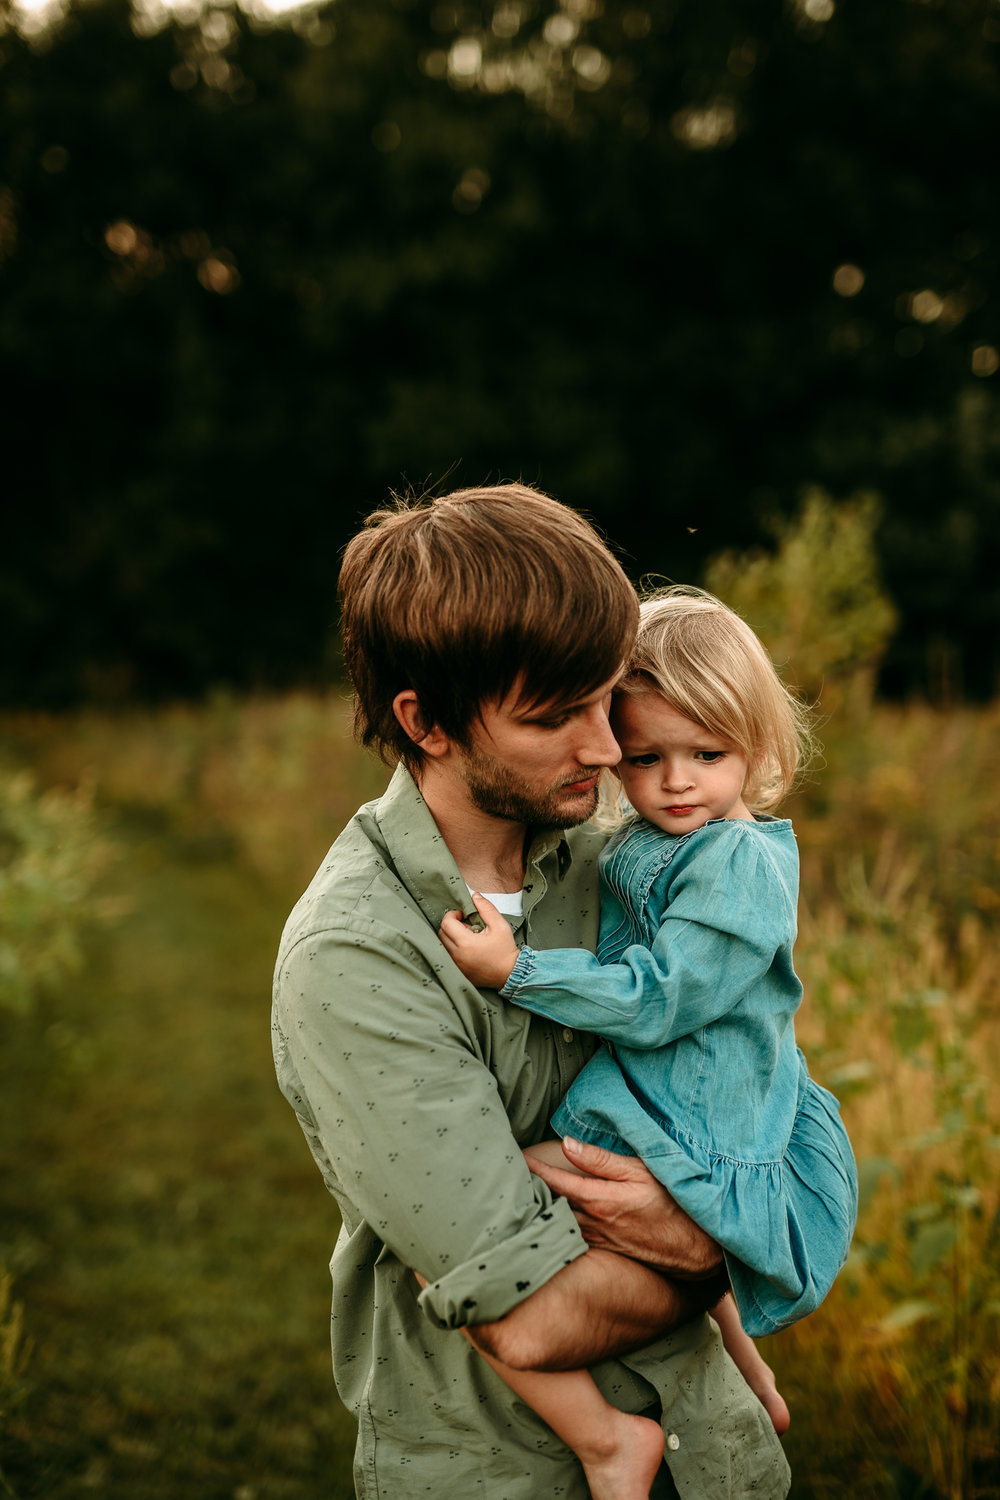 FREESE FAMILY MADE BELOVED PHOTOGRAPHY-8.jpg